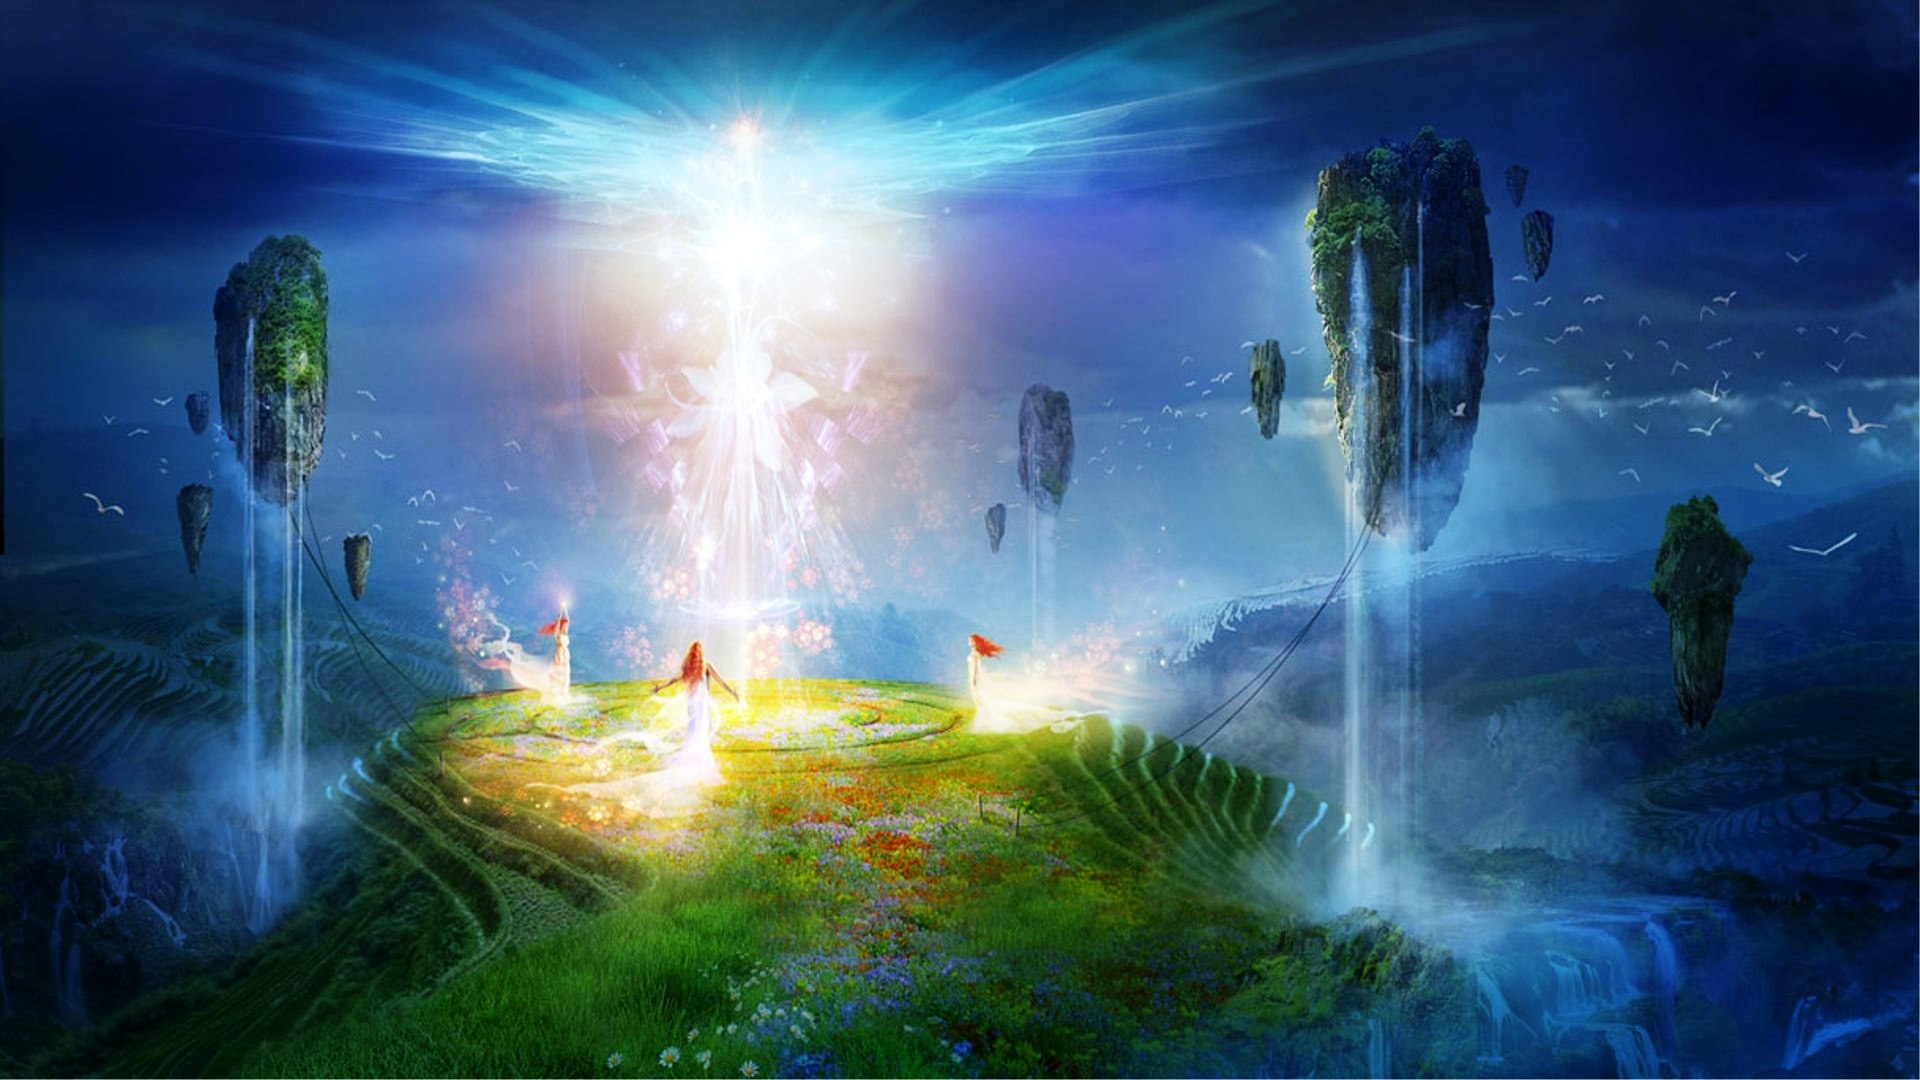 Enlightenment free pic